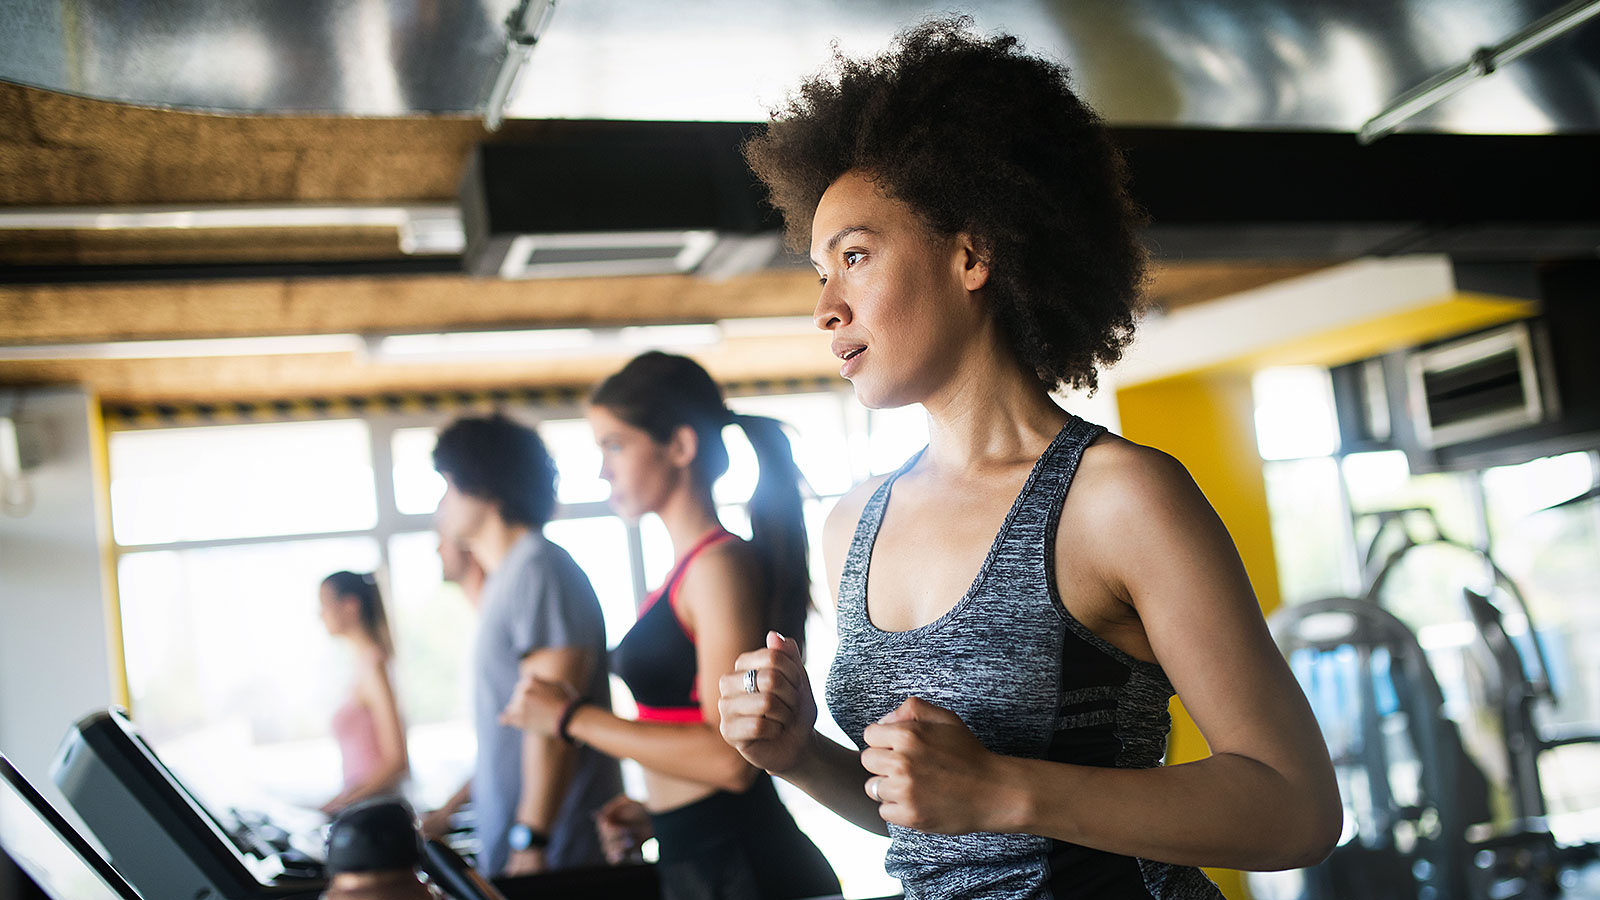 More people are working out, but not enough, says CDC report